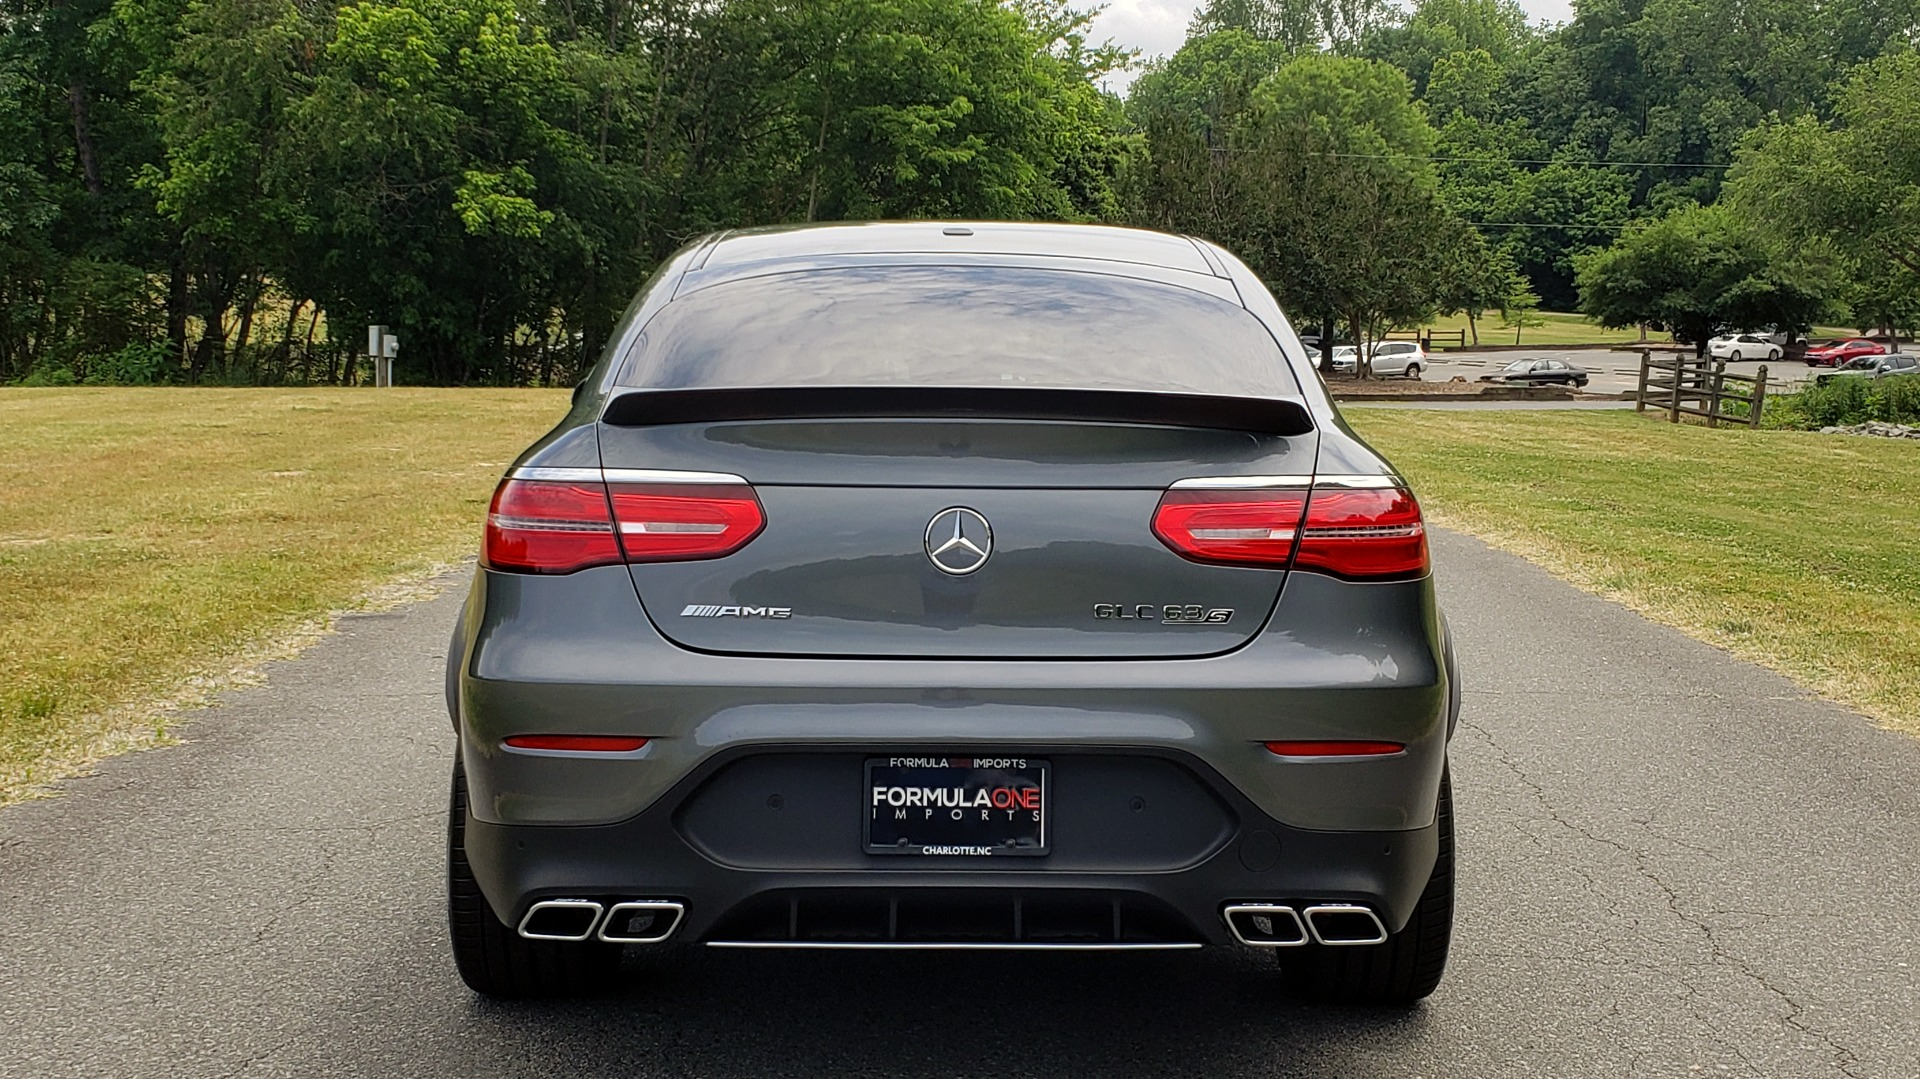 Used 2019 Mercedes-Benz GLC AMG 63 S 4MATIC COUPE / NAV / TRACK PACE APP / AMG PERF EXH / MULTIMEDIA for sale Sold at Formula Imports in Charlotte NC 28227 34